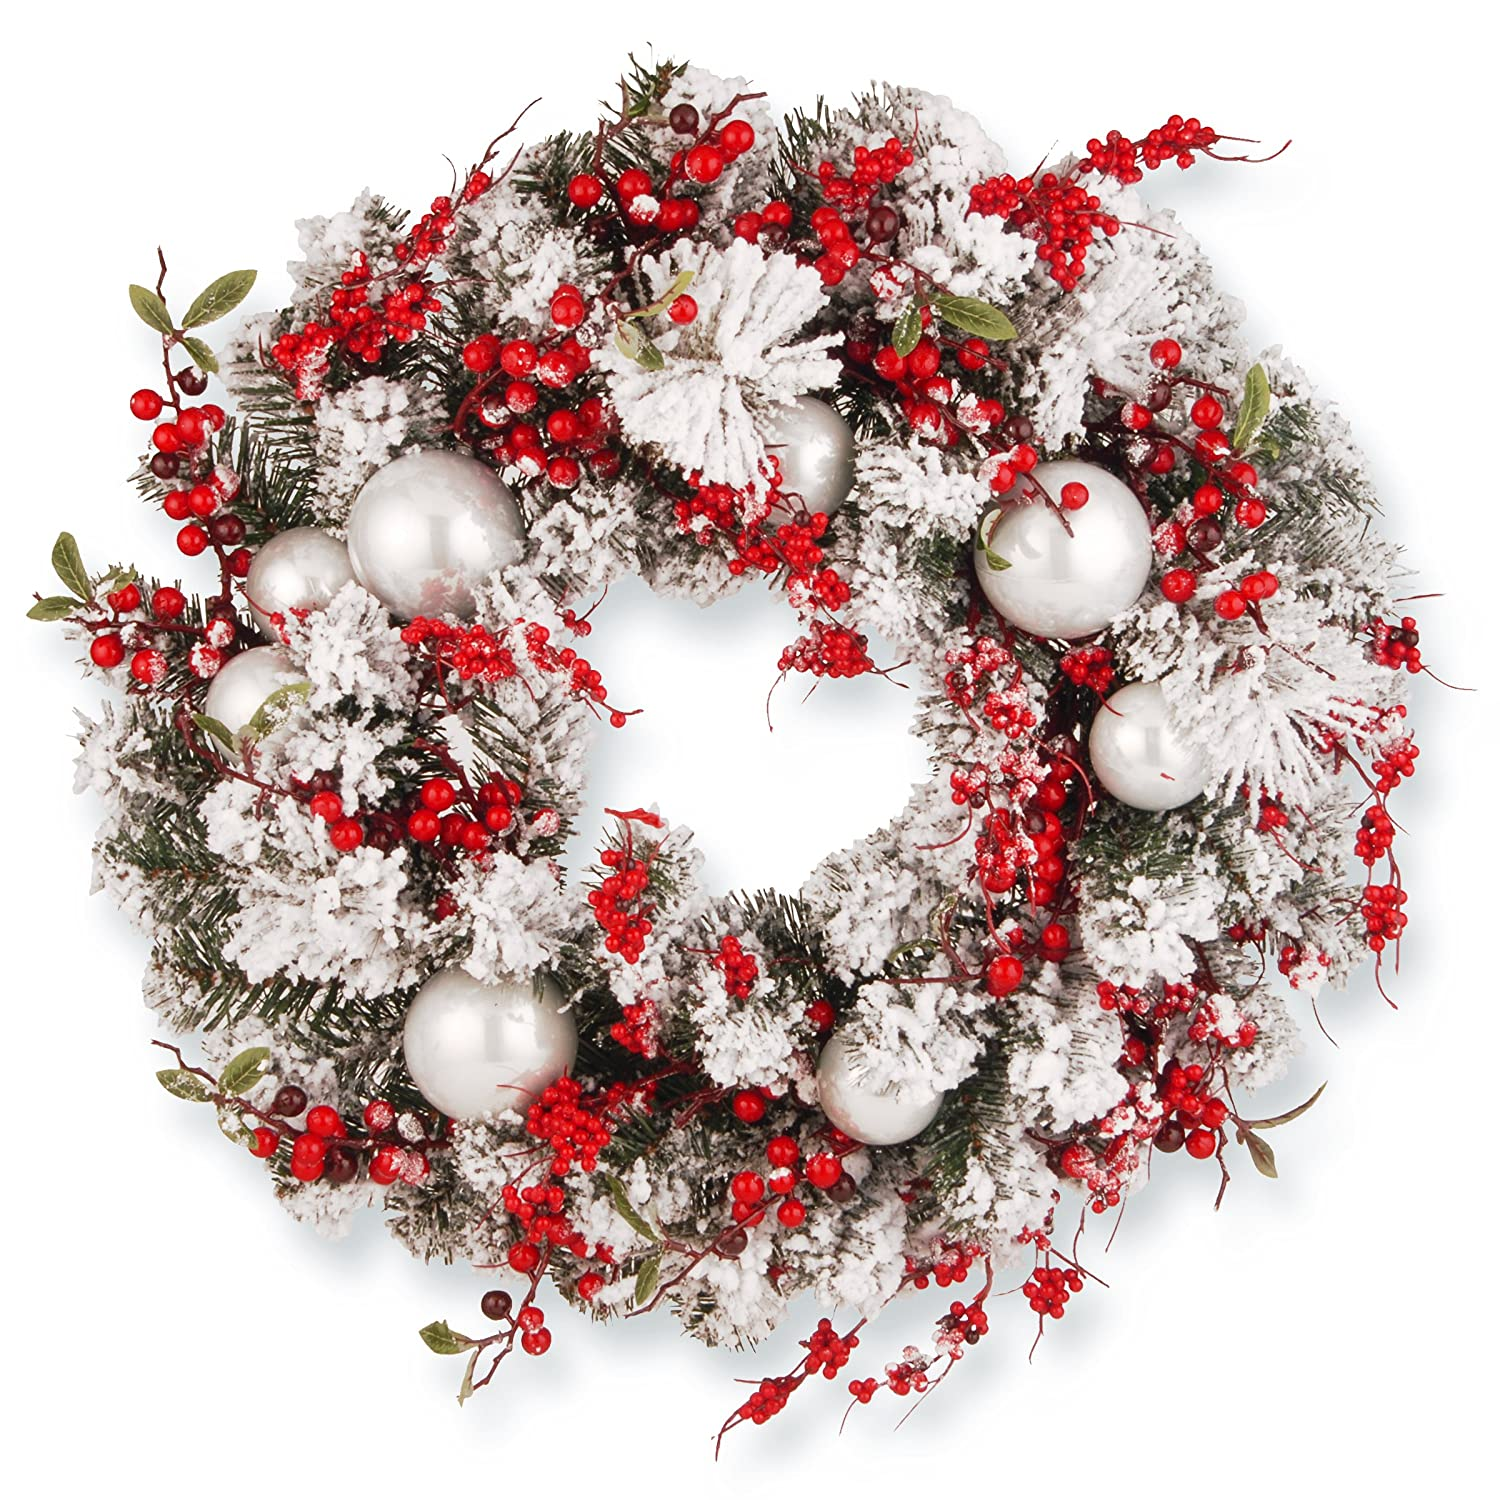 Red And White Christmas Wreath.National Tree 24 Inch Christmas Wreath With Red And White Ornaments Rac J501x24